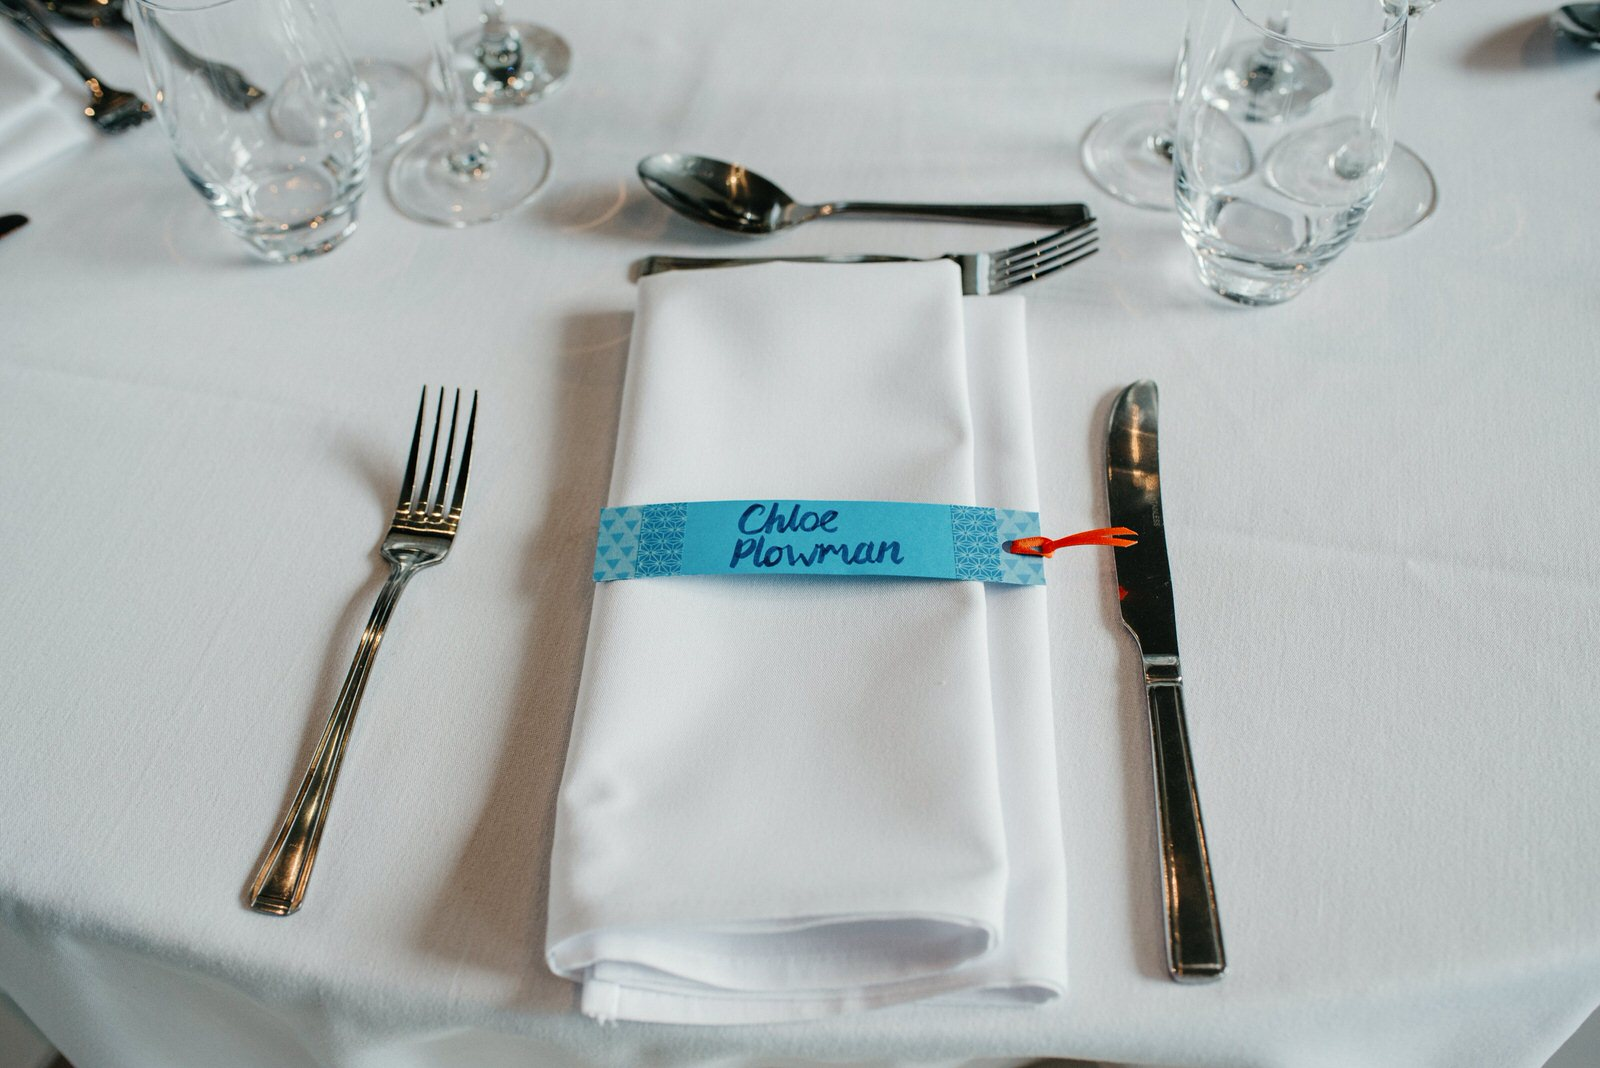 Quirky place setting details in blue and orange